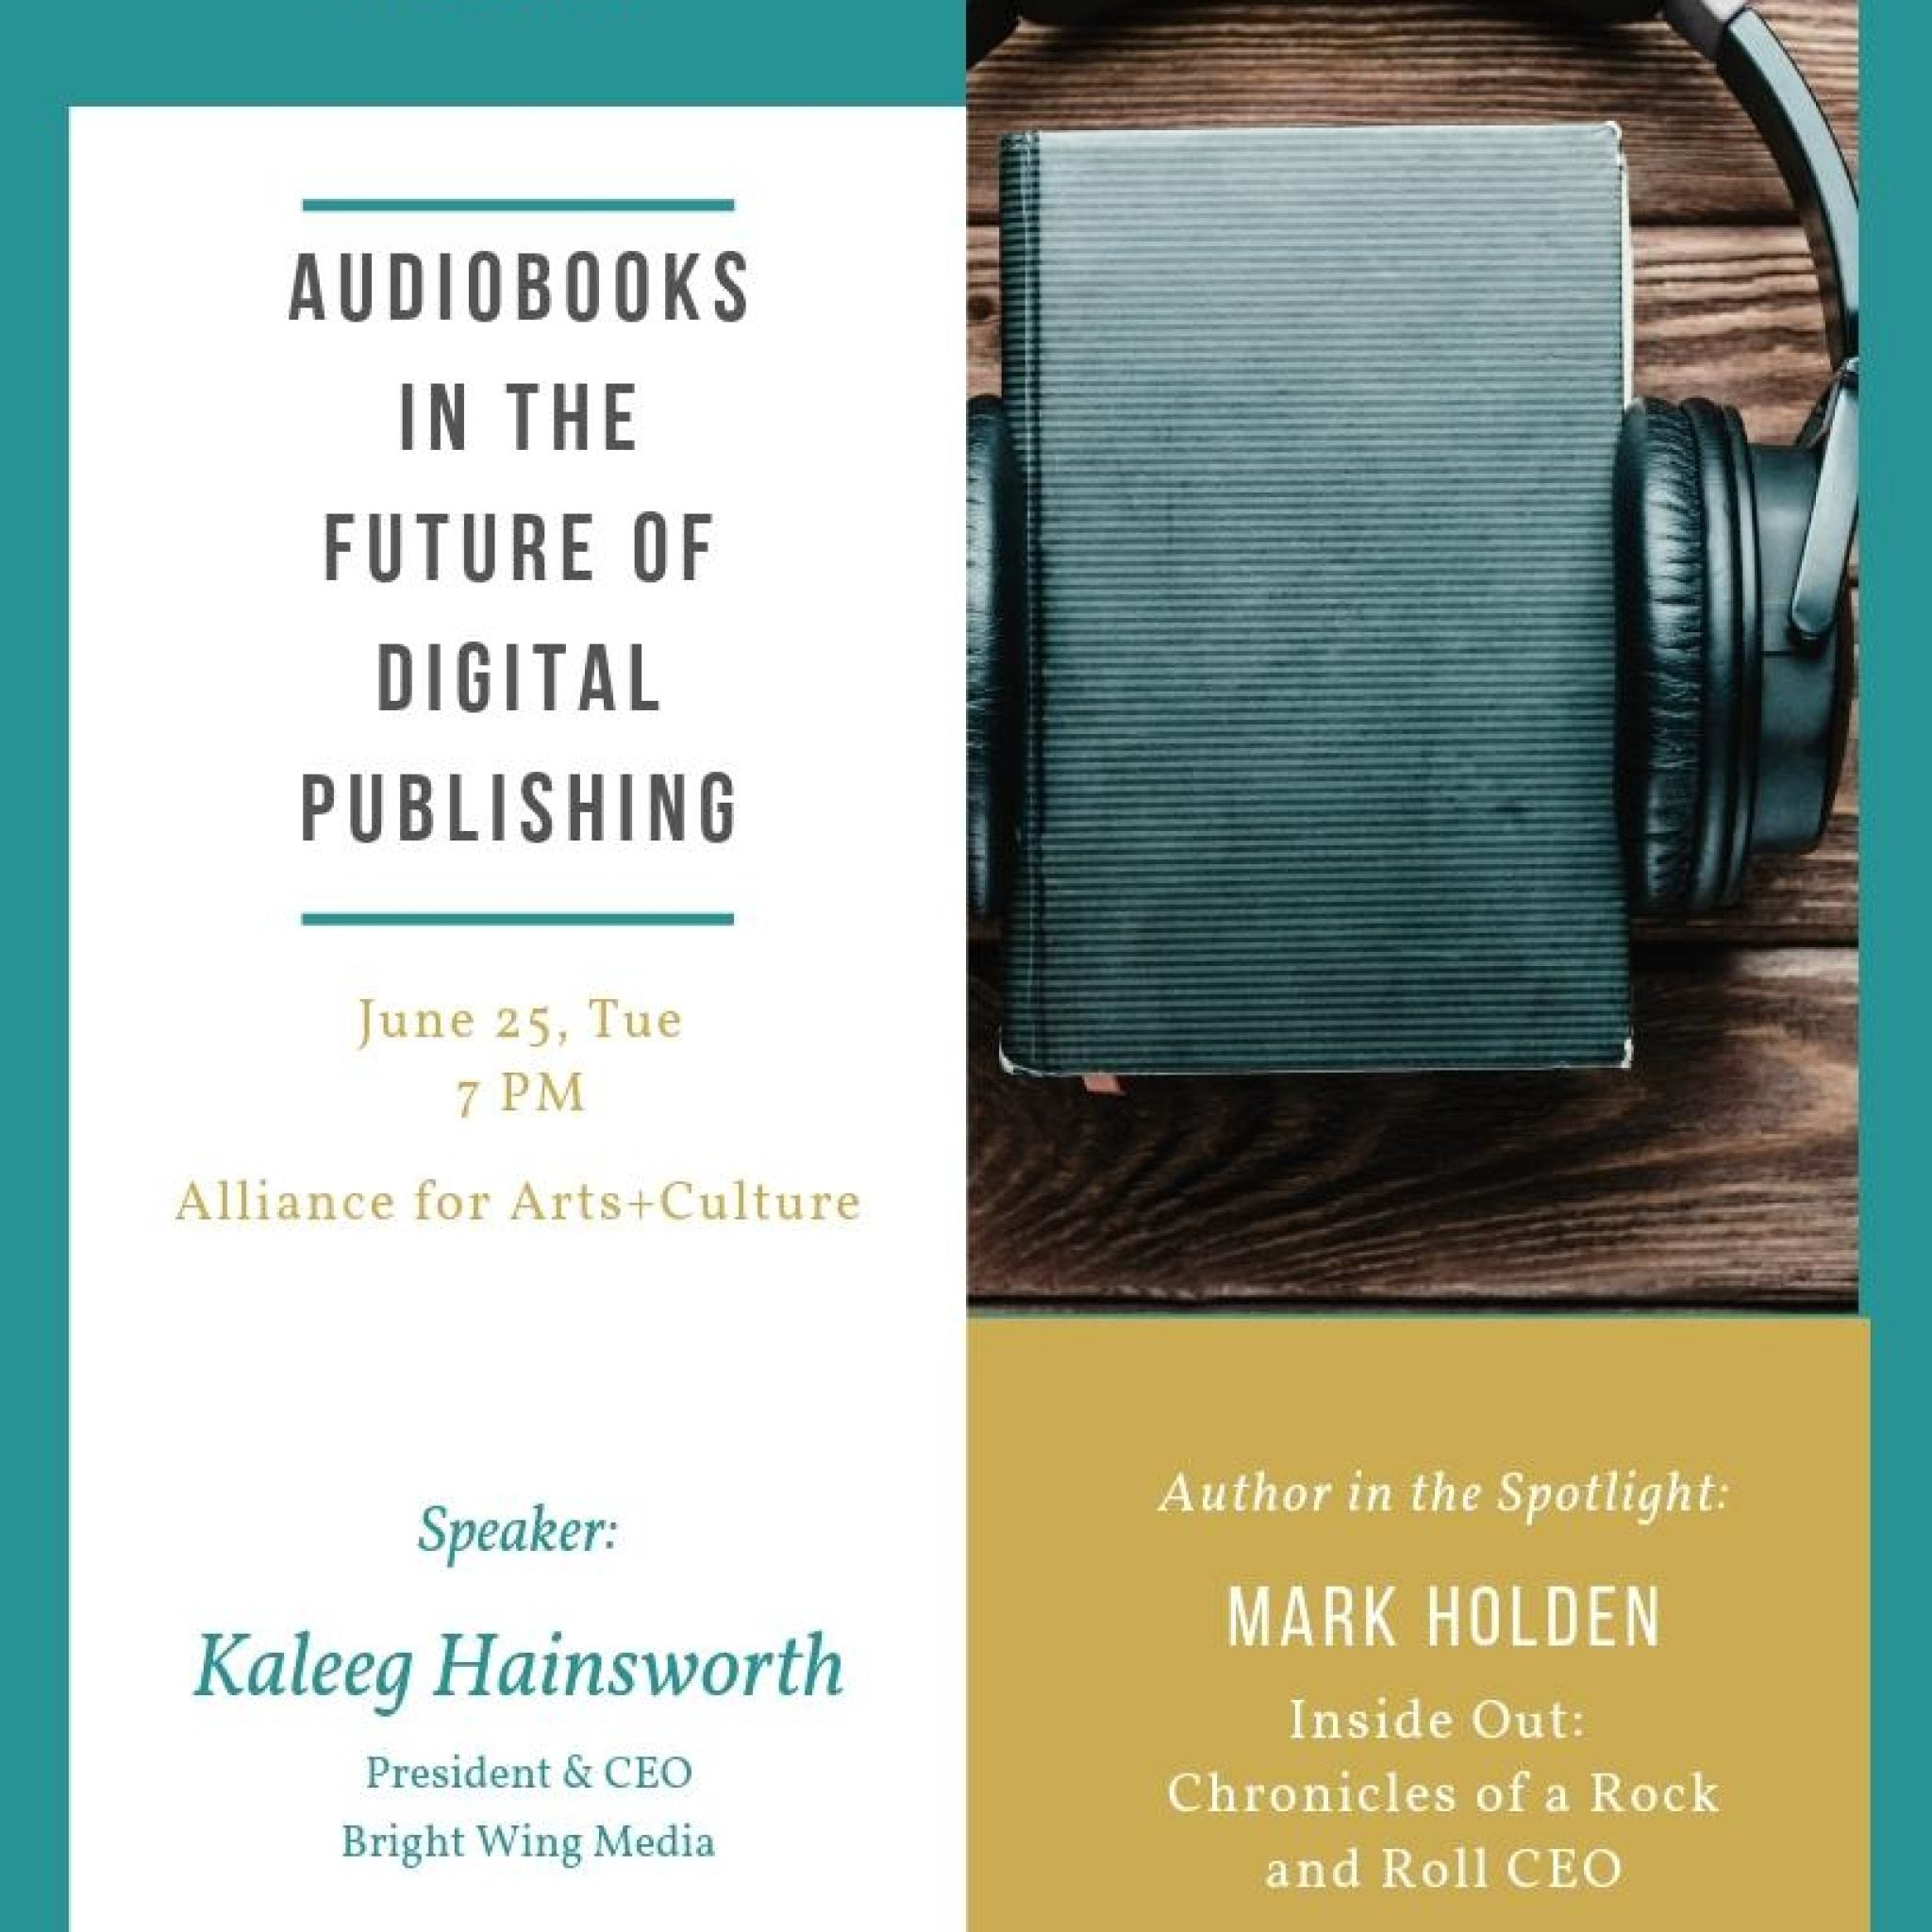 Audiobooks in the Future of Digital Publishing